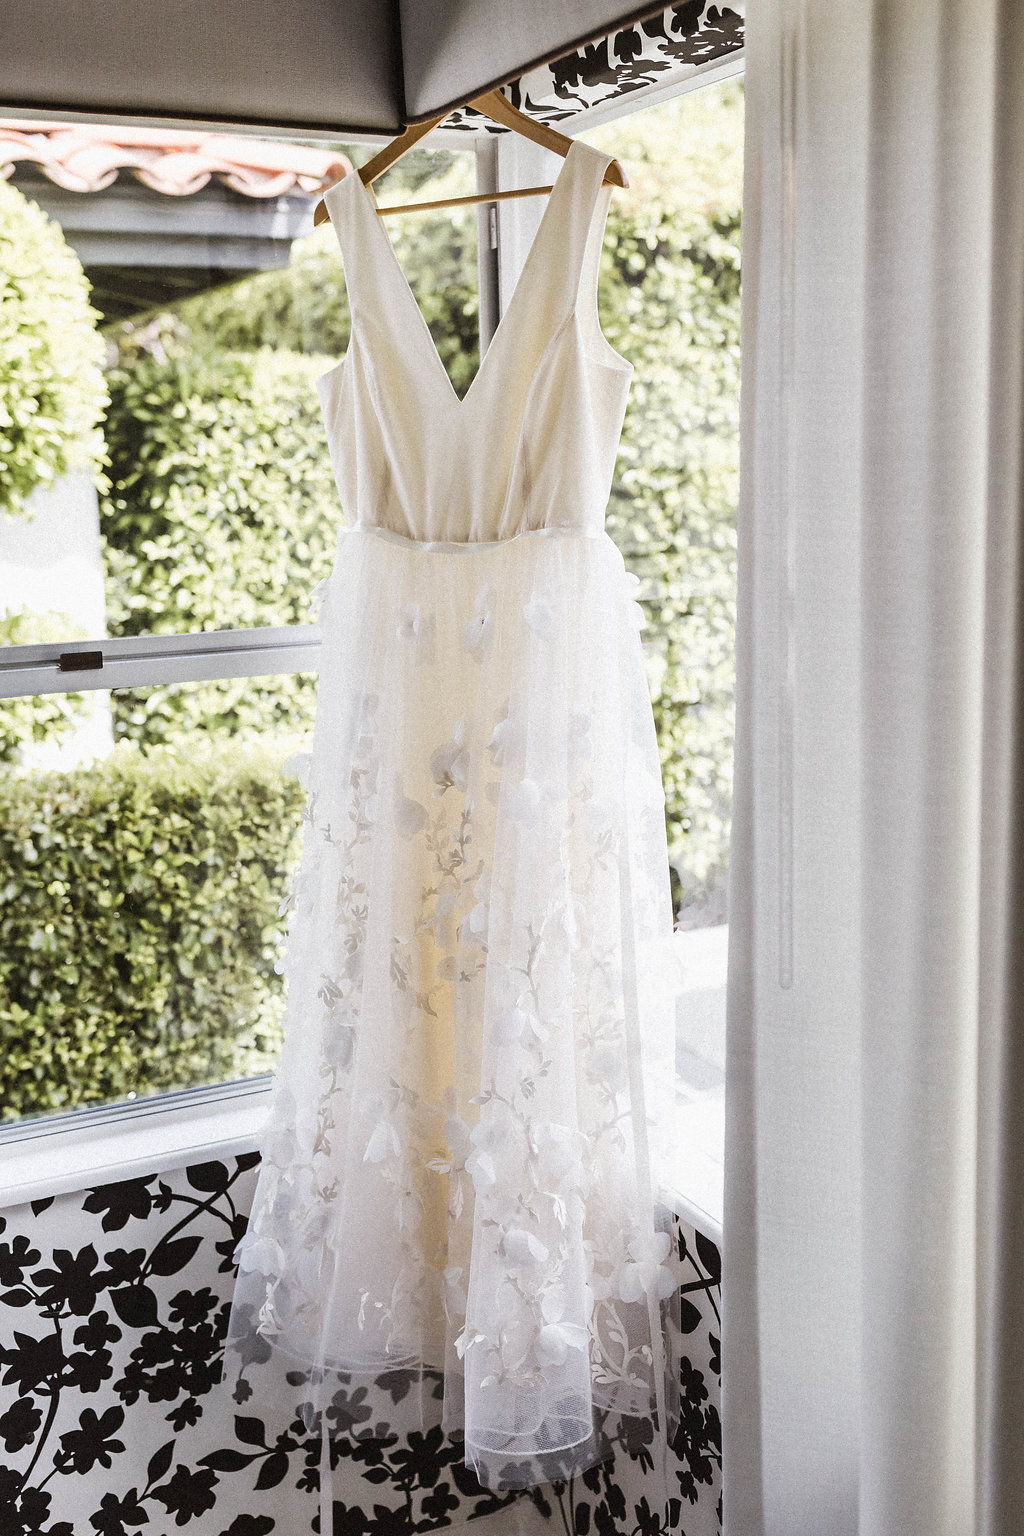 White hanging dress sheer at Avalon Palm Springs Wedding